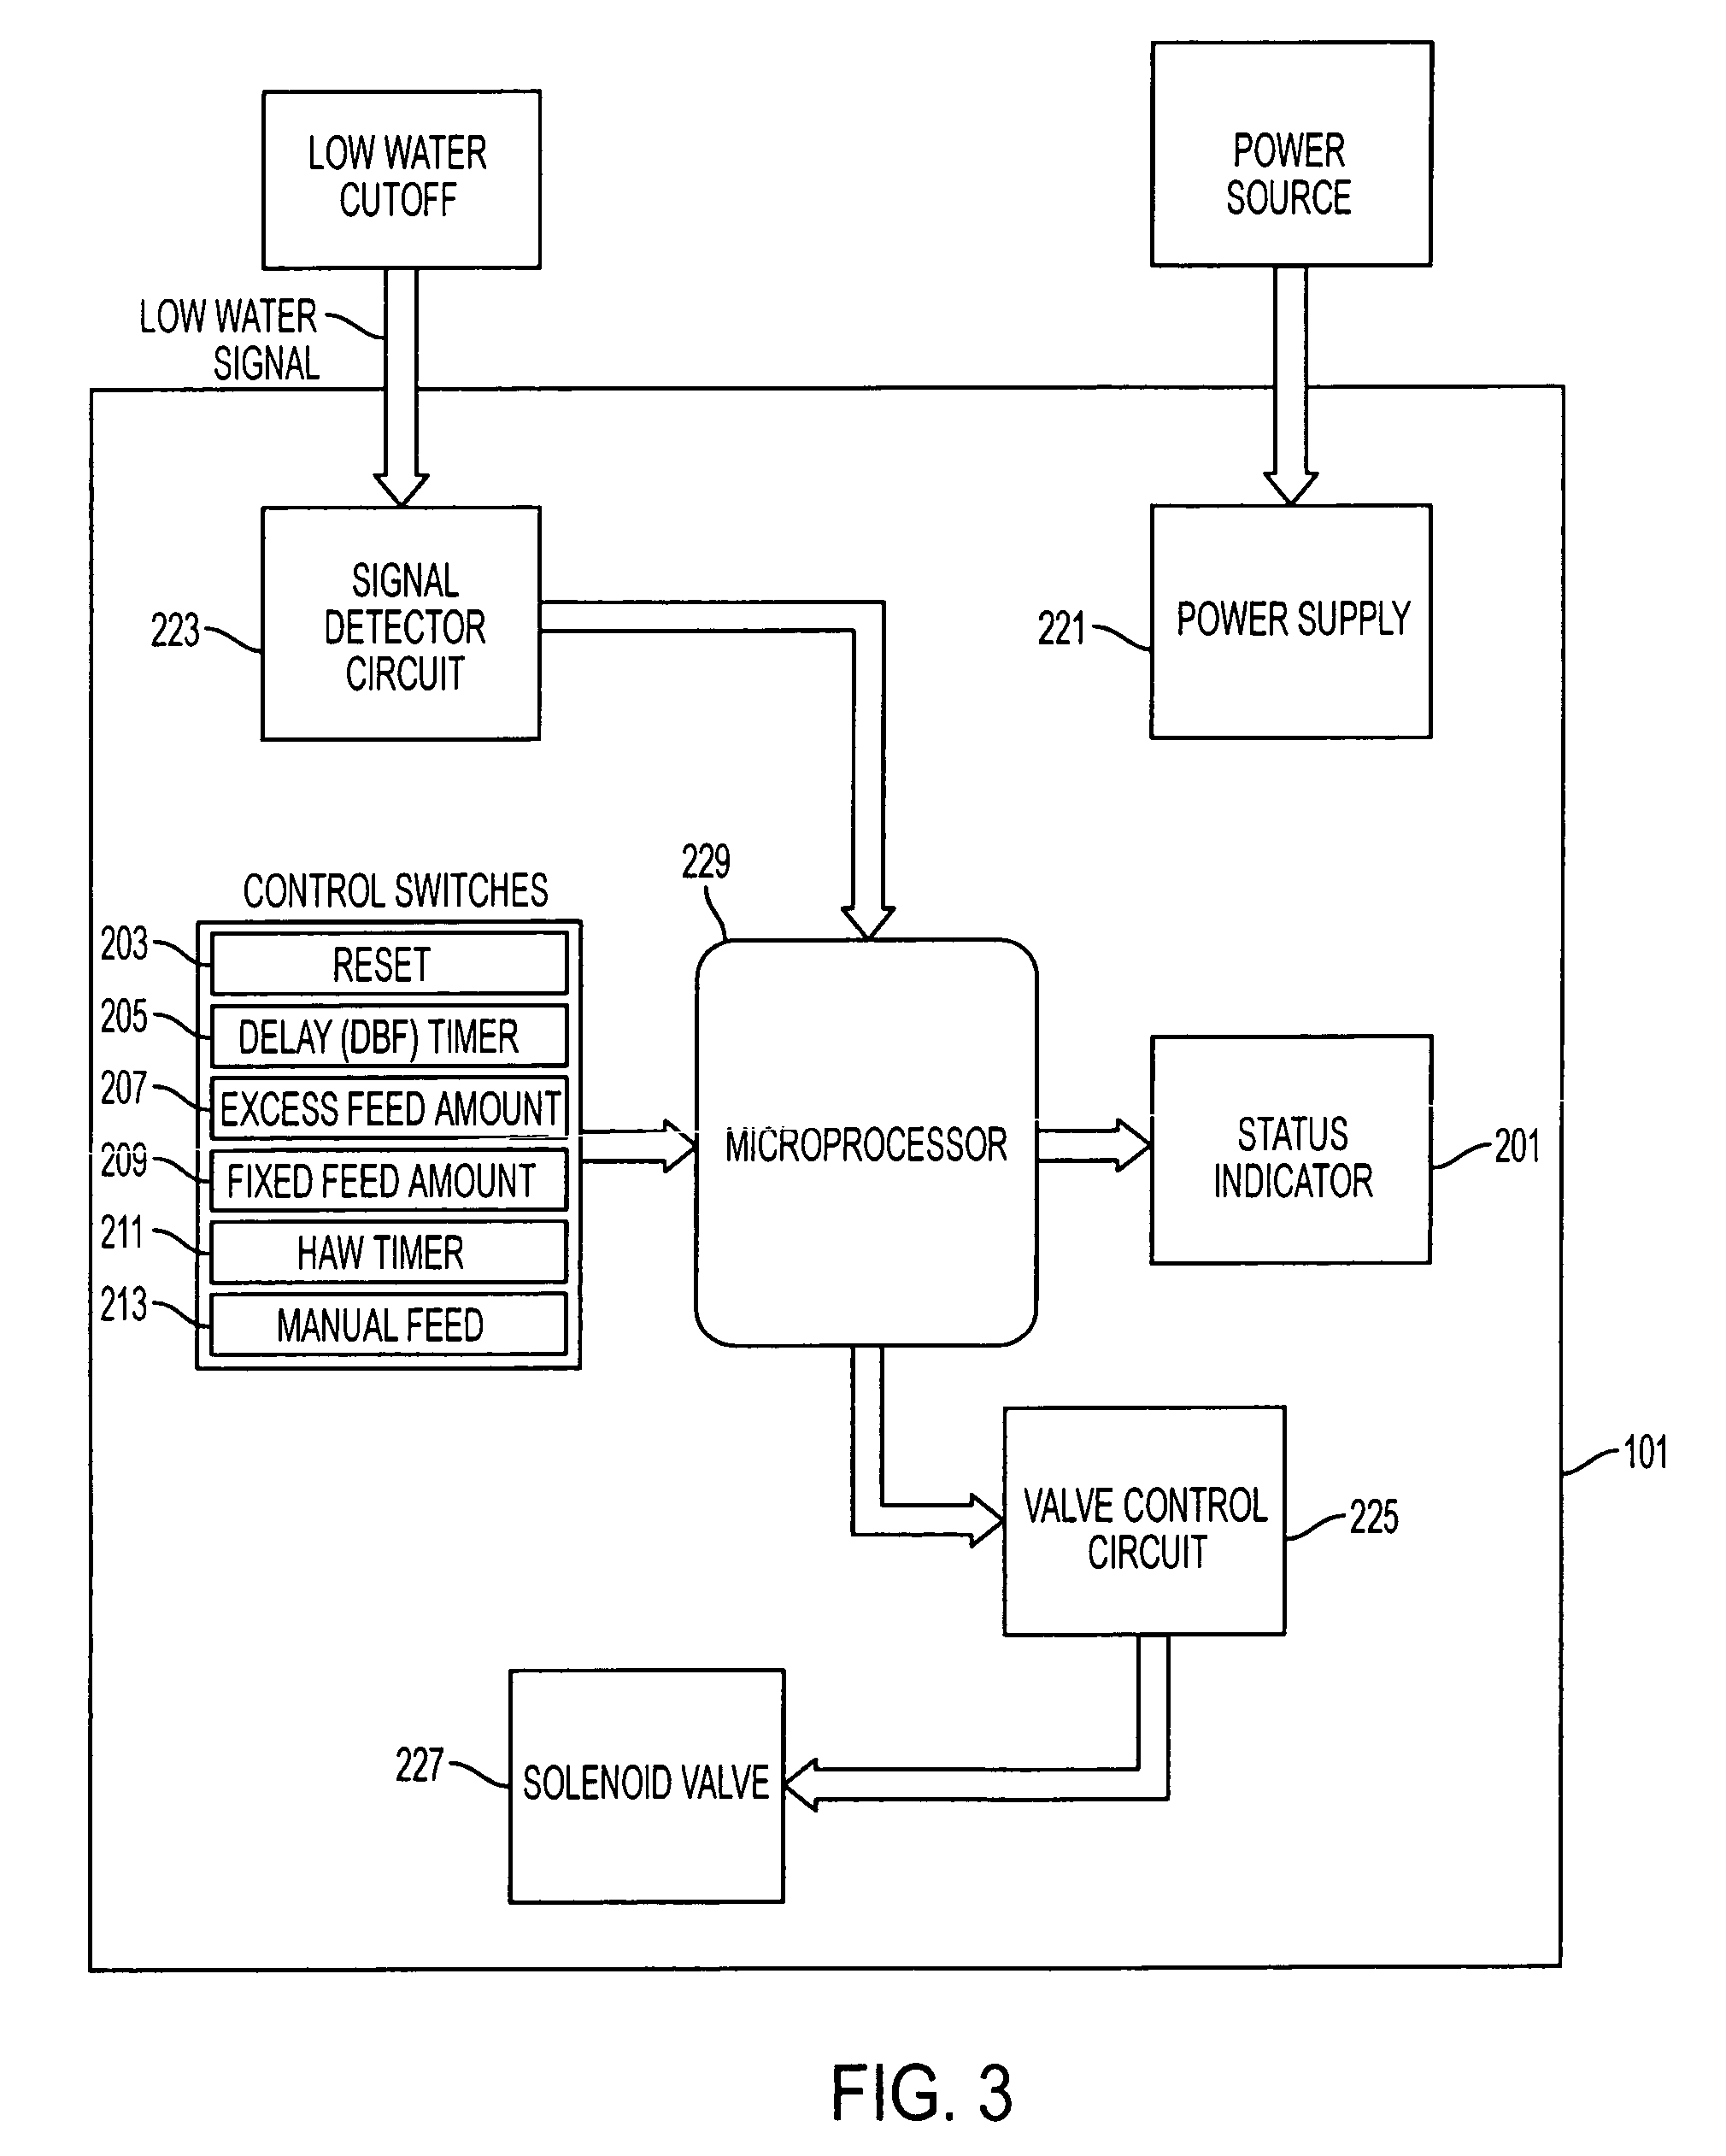 Low Water Cutoff Wiring Diagram 31 Images Taco Controls Us07992527 20110809 D00003 Patent Us7992527 Feed Controller For A Boiler Google Patents Cut